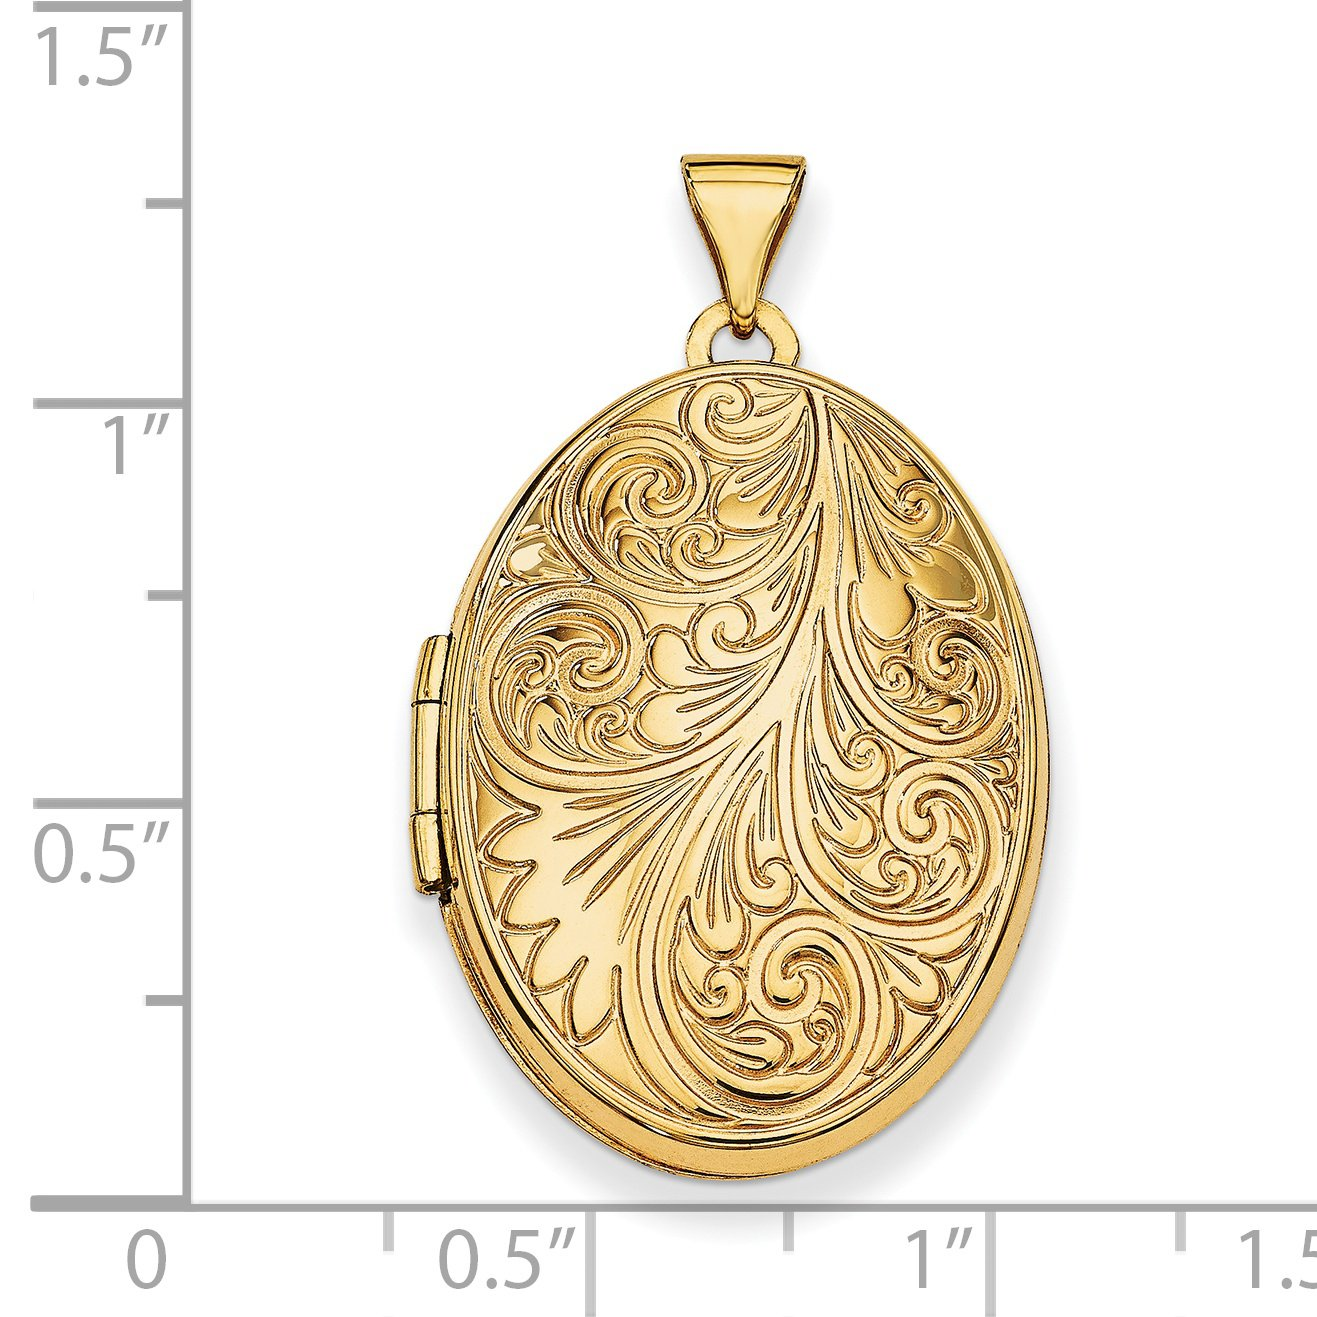 Roy Rose Jewelry 14K Yellow Gold Scroll Oval Locket 34x26mm by Roy Rose Jewelry (Image #3)